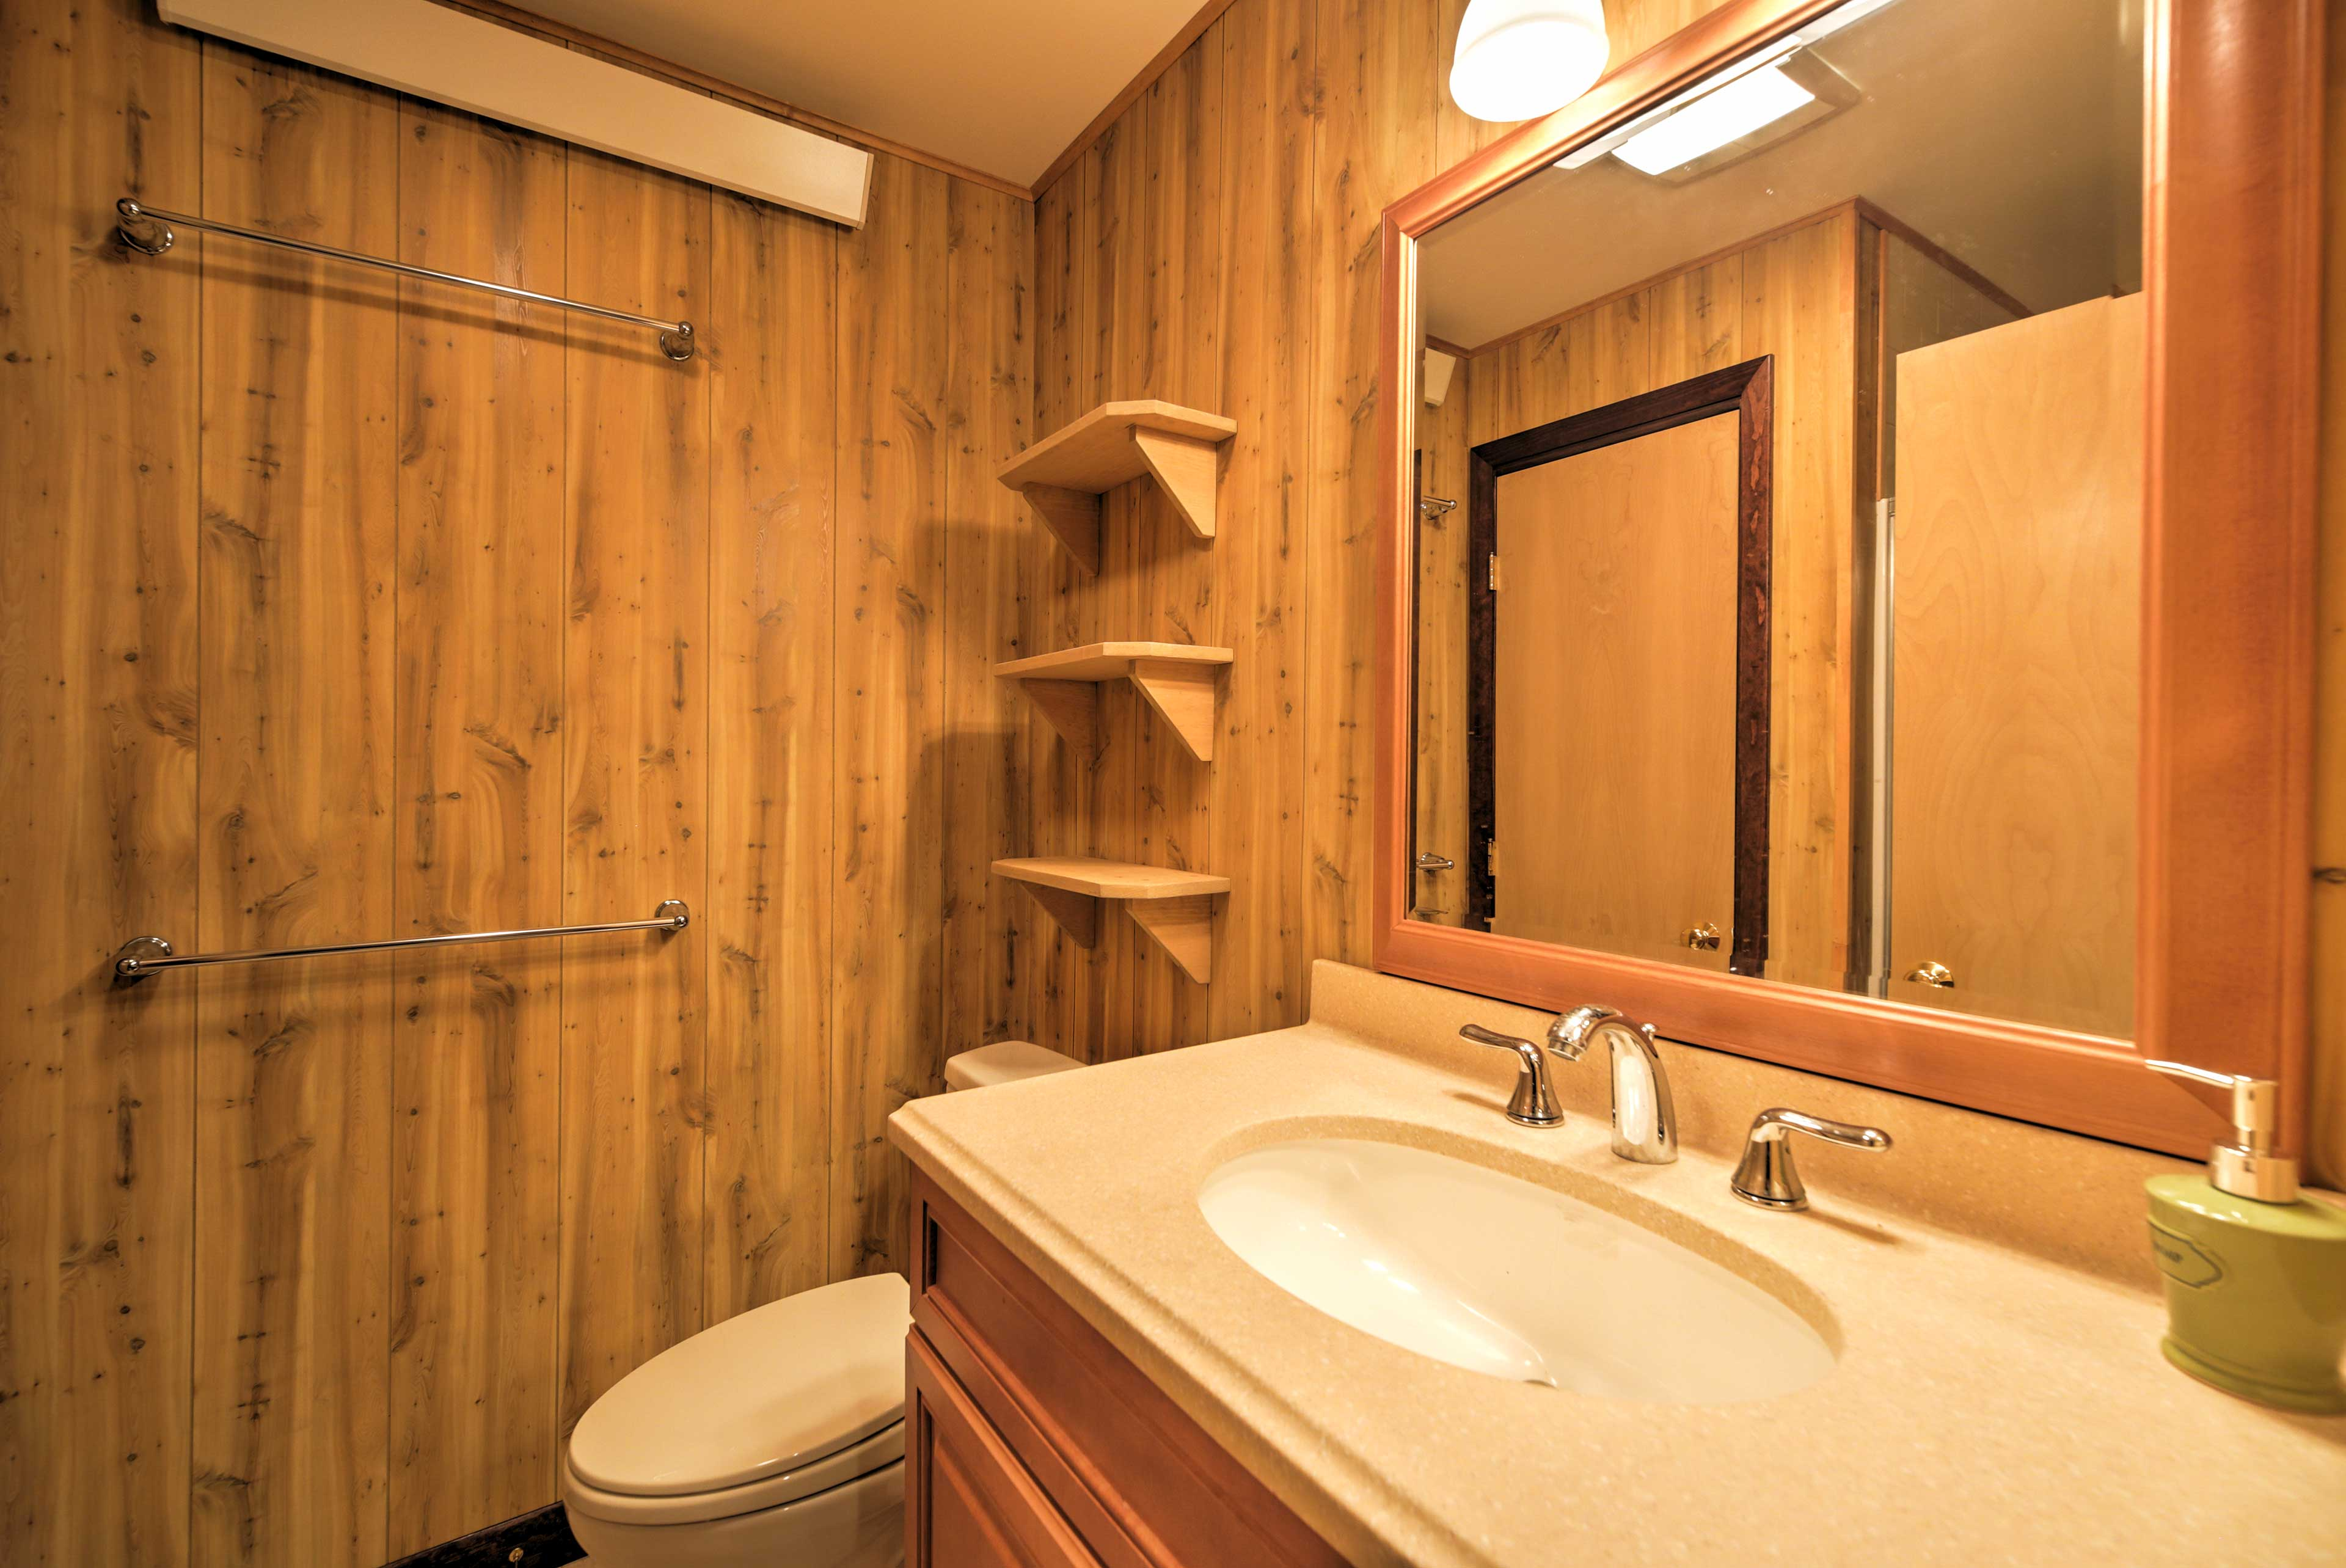 With 4 full bathrooms, freshening up in the morning has never been easier.